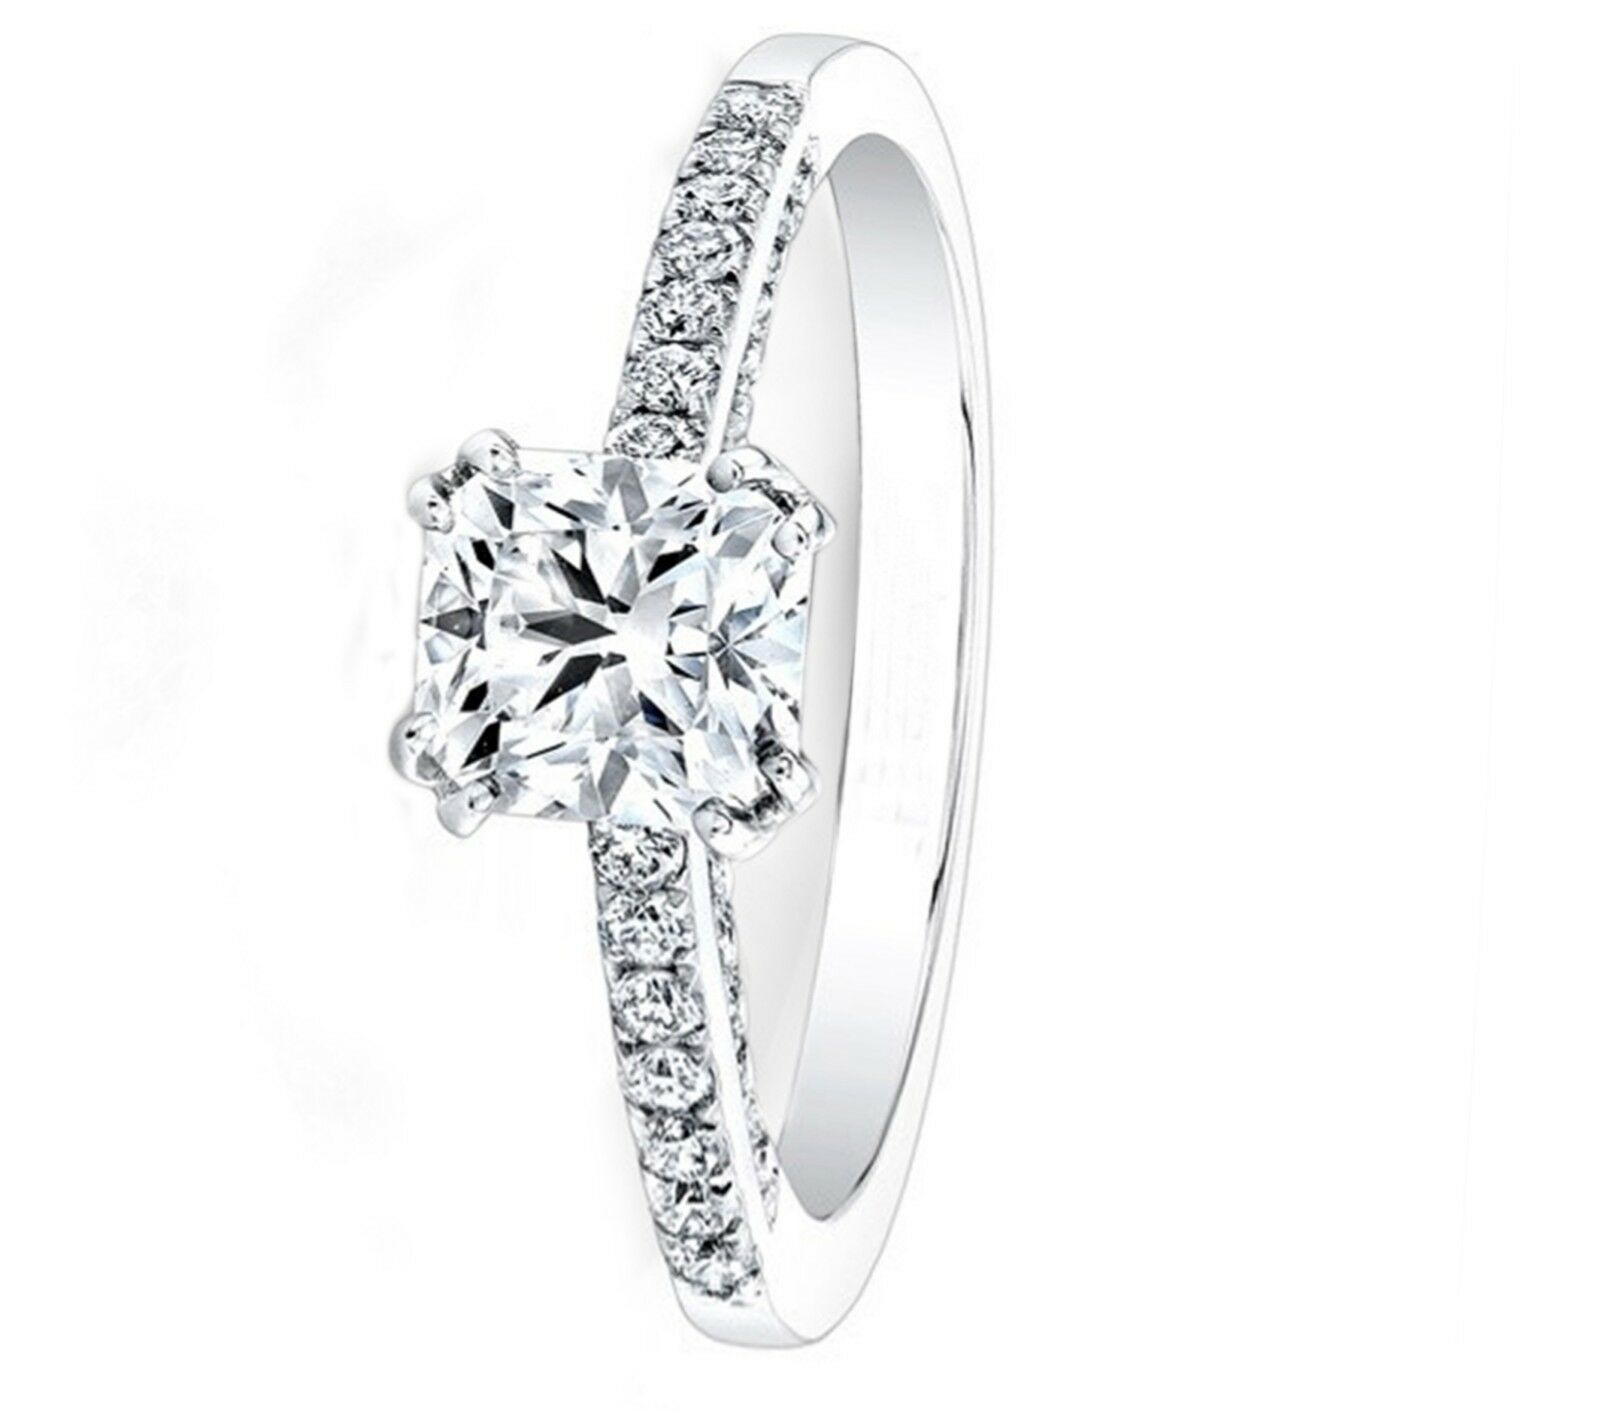 0.81 Ct Cushion Cut Diamond Engagement Ring 14K Real White gold Rings Size 6 7 8